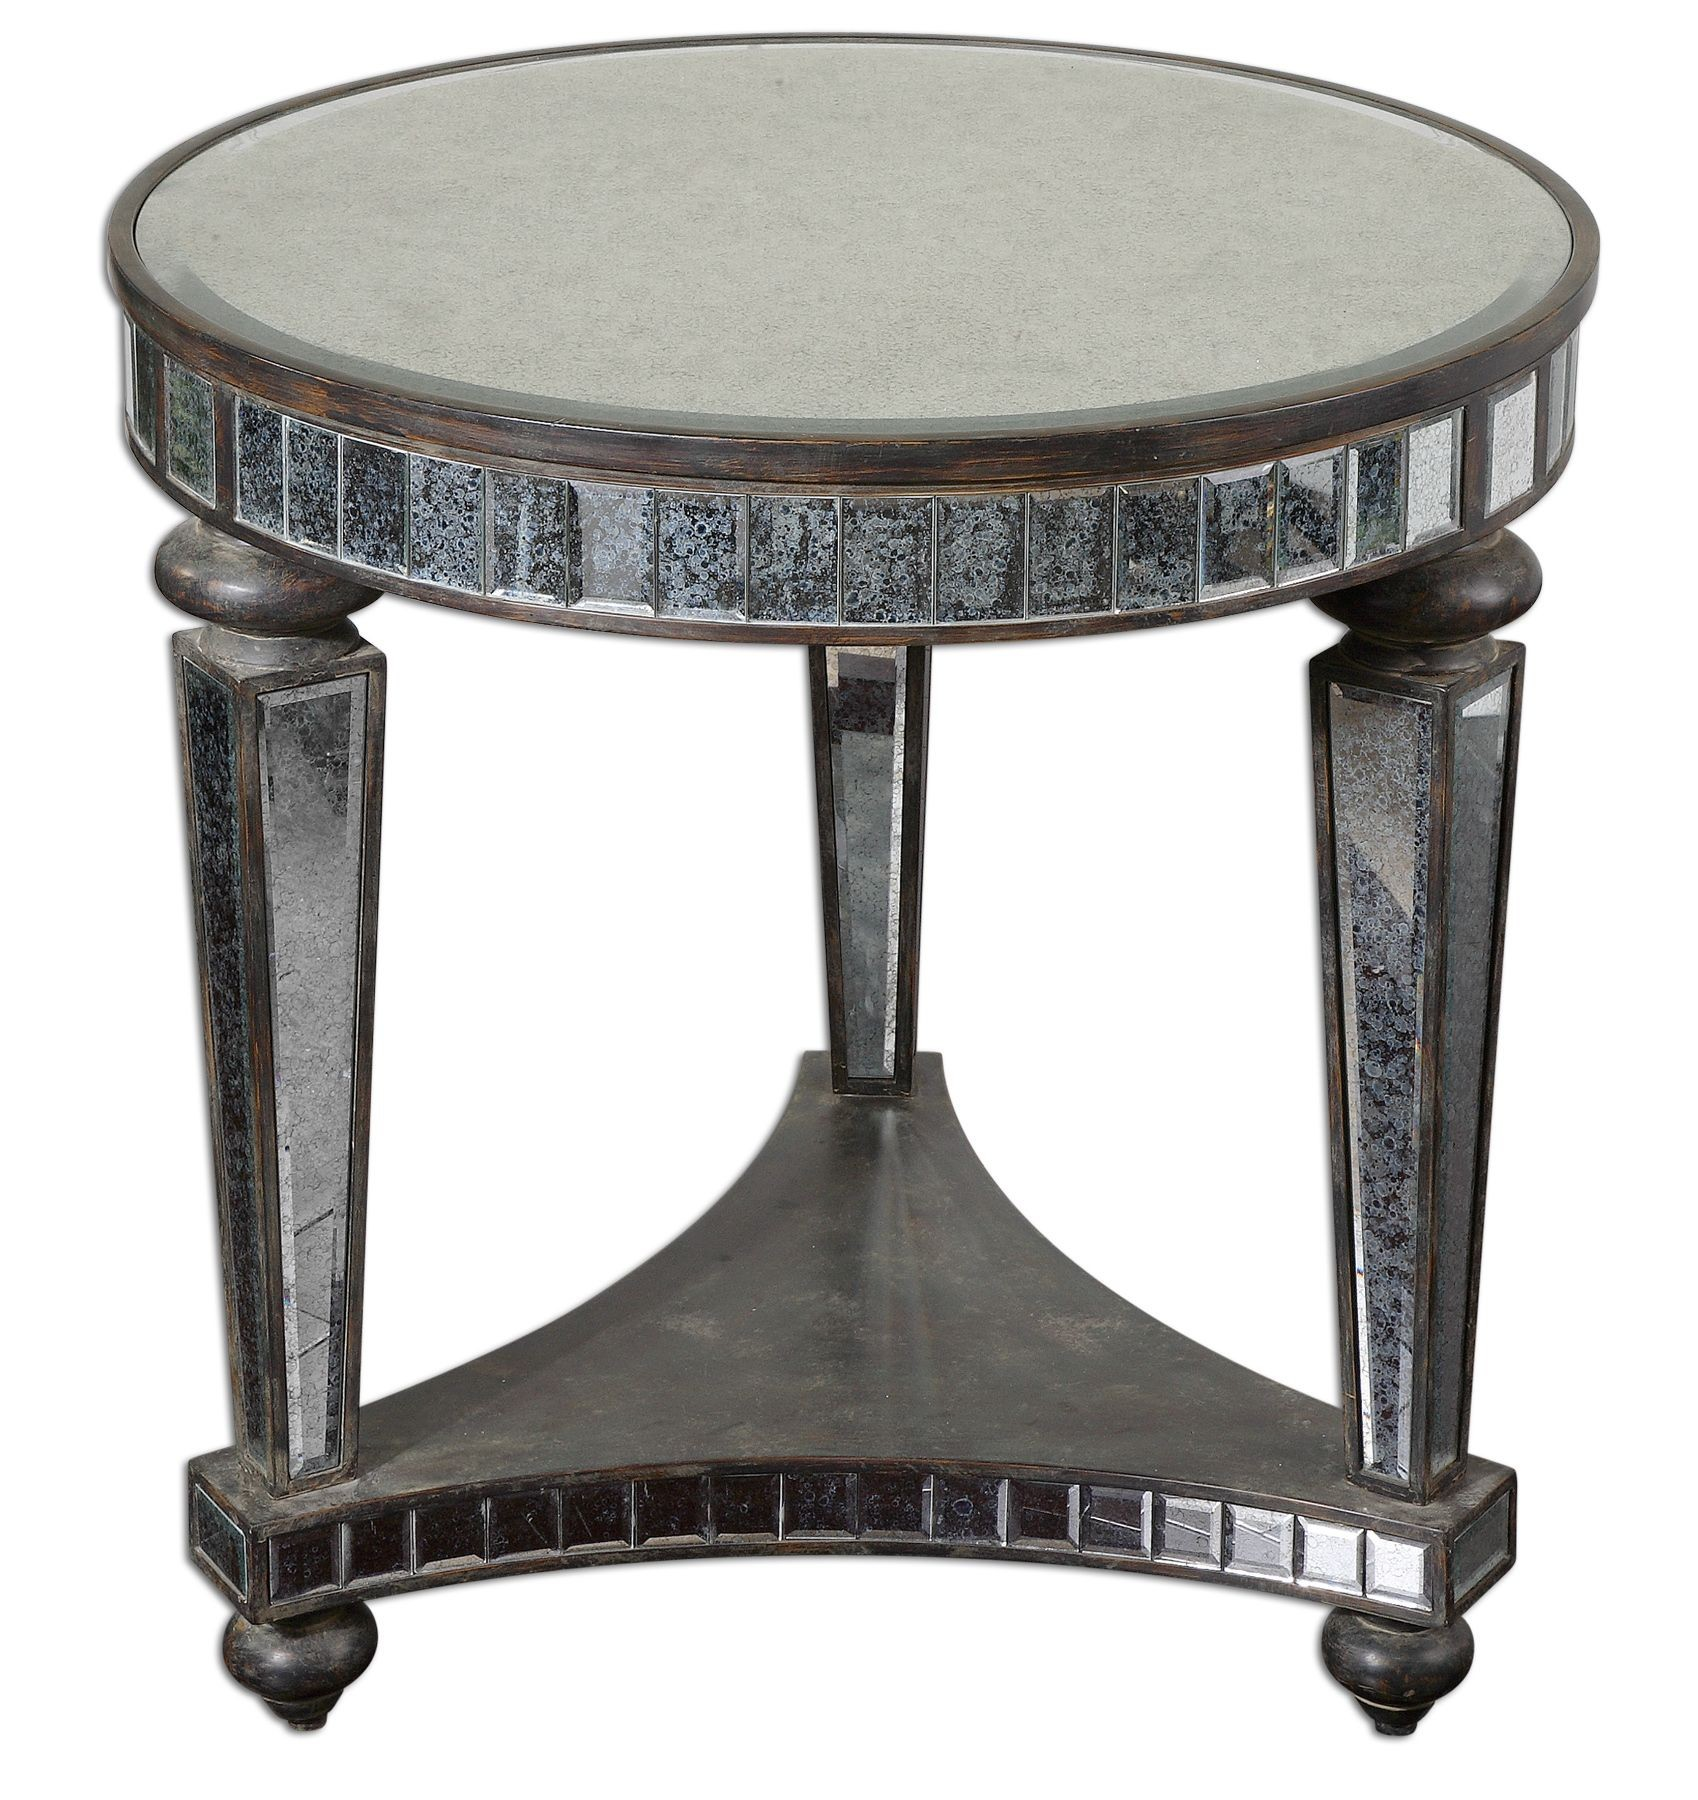 old and vintage round mirrored accent table with shelves furniture legs painted black color decor ideas storage white end long entry resin outdoor luxury coffee dark side lazy boy